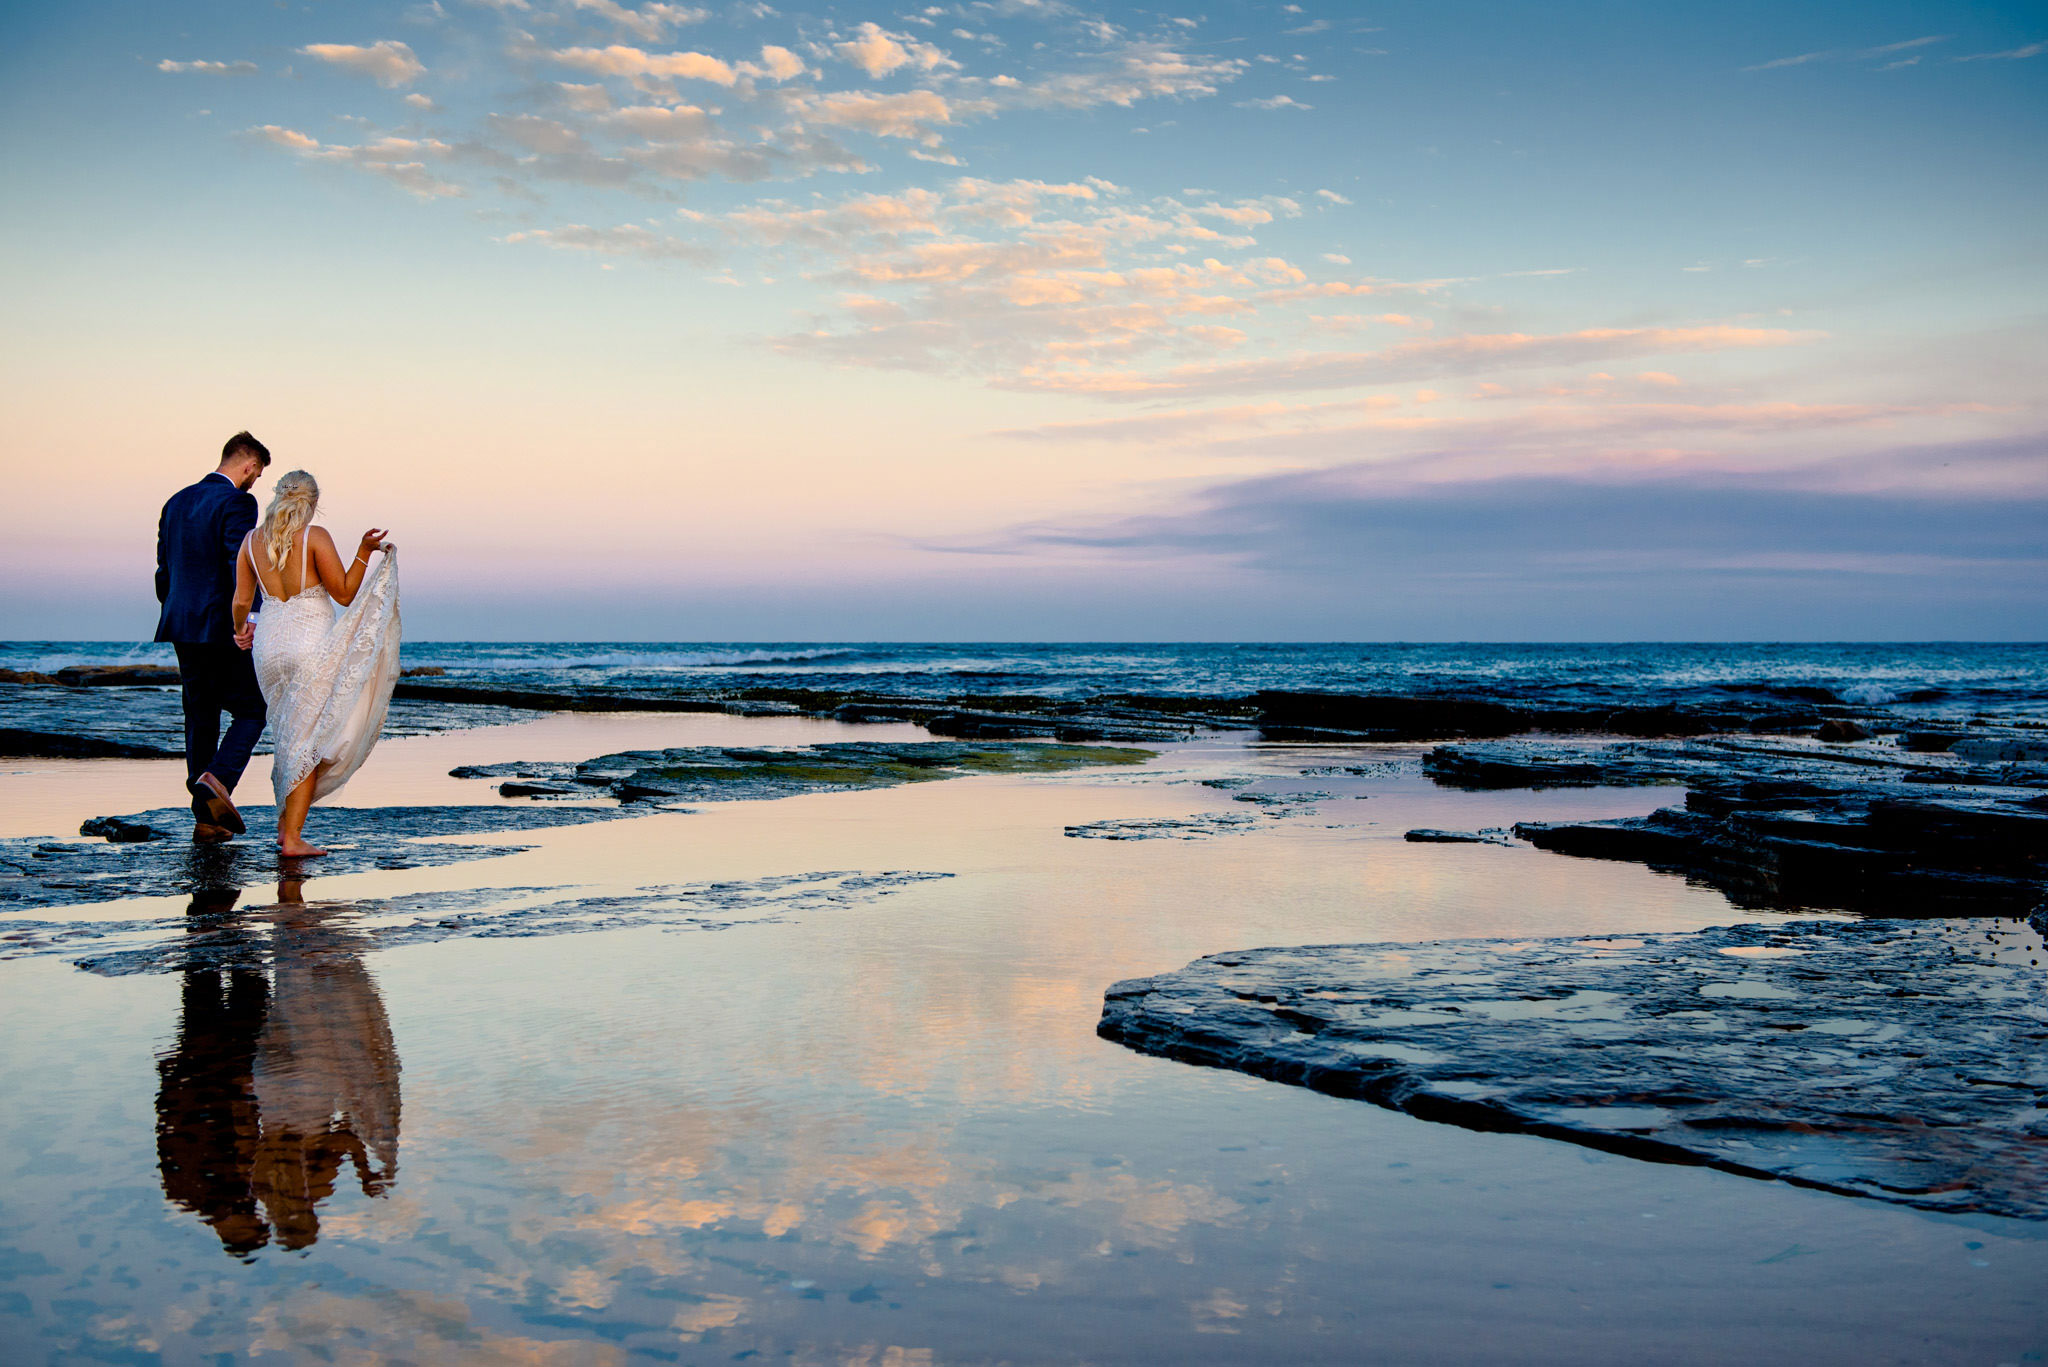 Reflection of bride and groom in water at Narrabeen beach